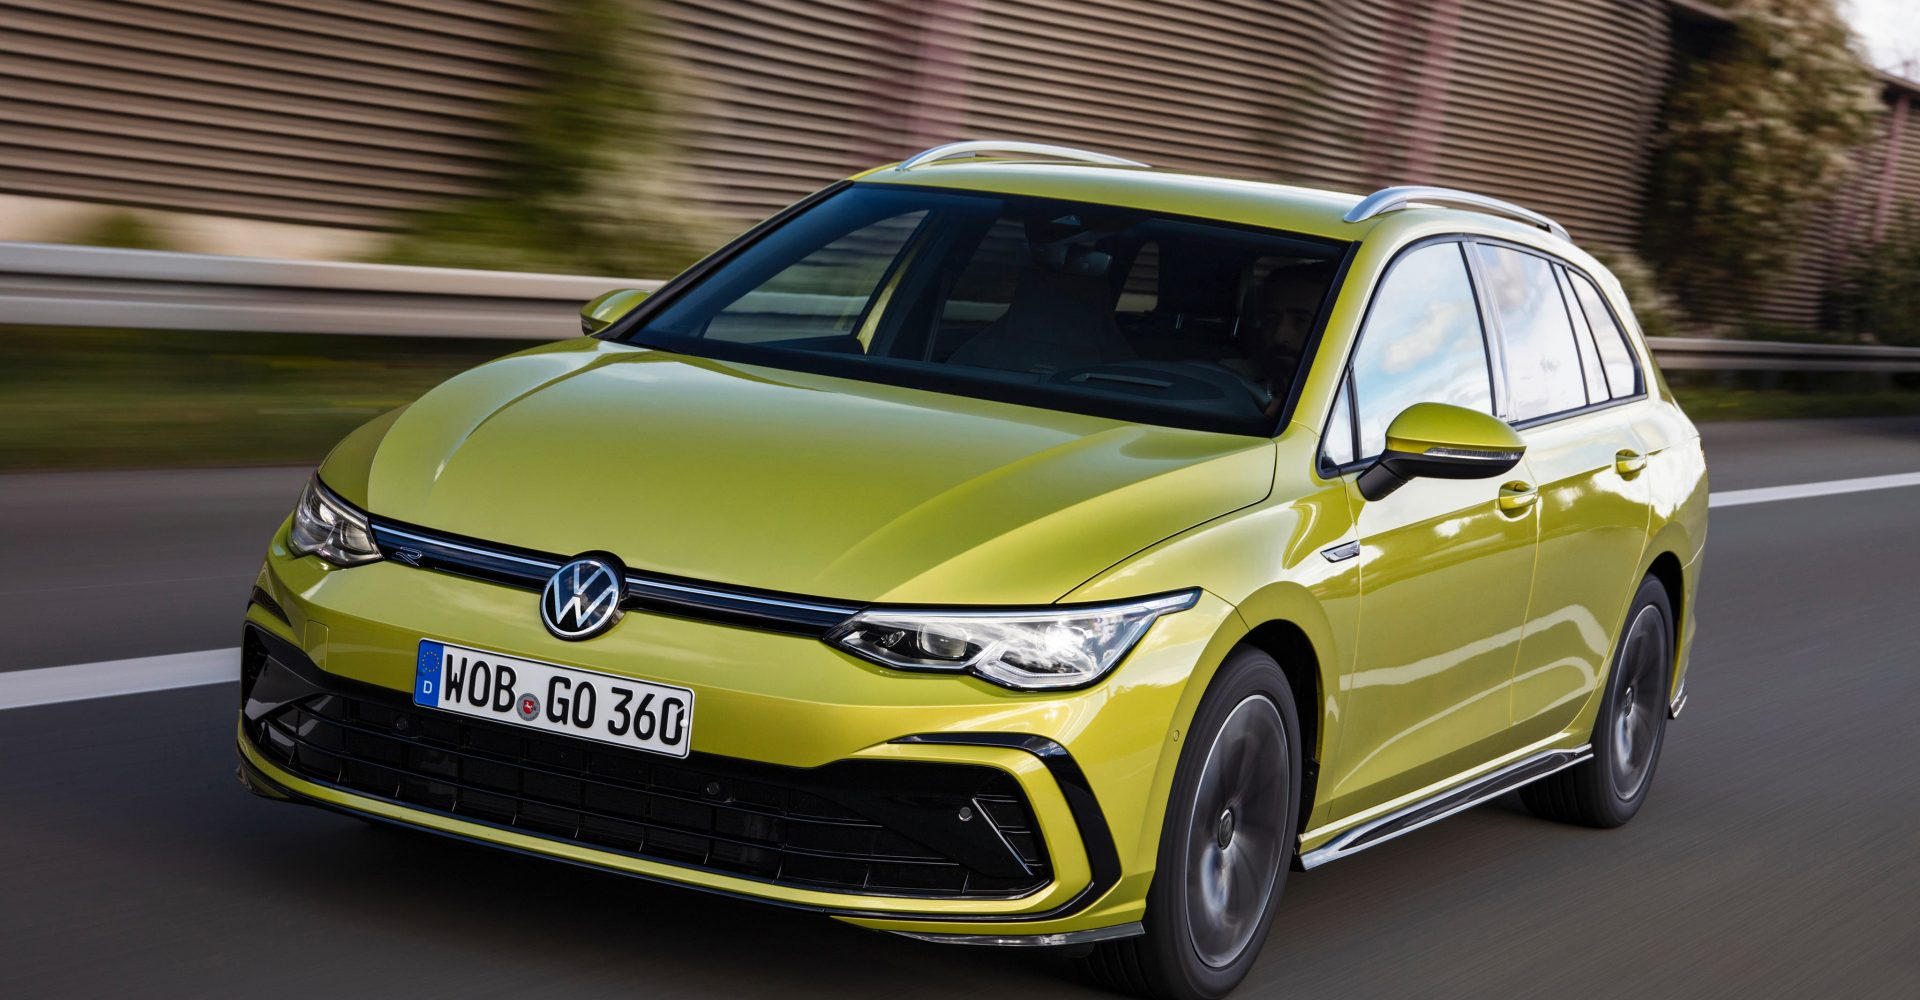 New Volkswagen Golf Estate hits the road priced from £24,575